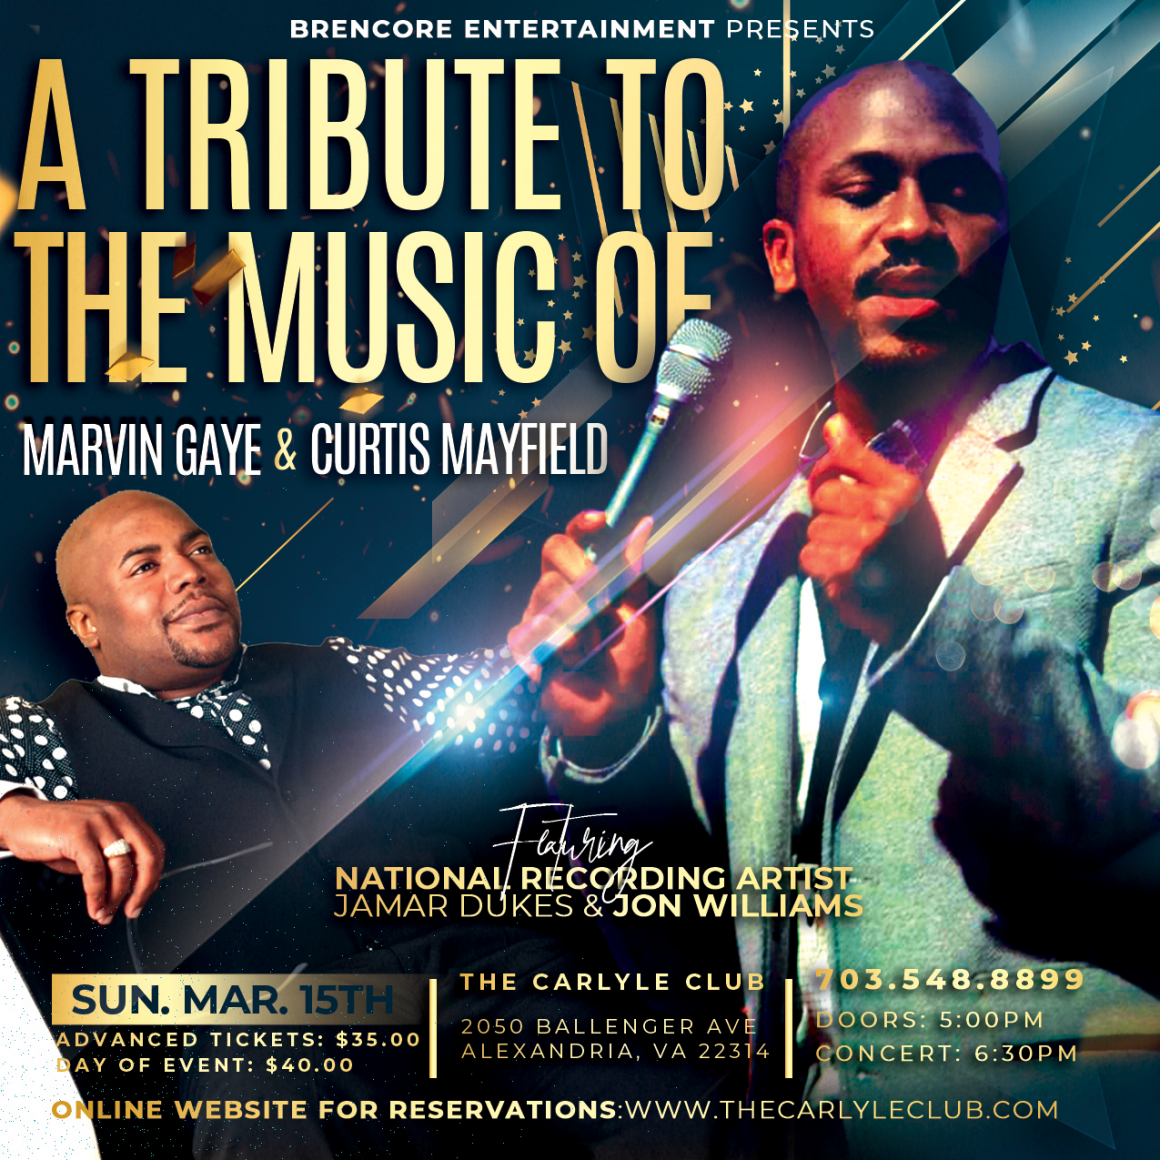 A Tribute to the Music of Marvin Gaye and Curtis Mayfield